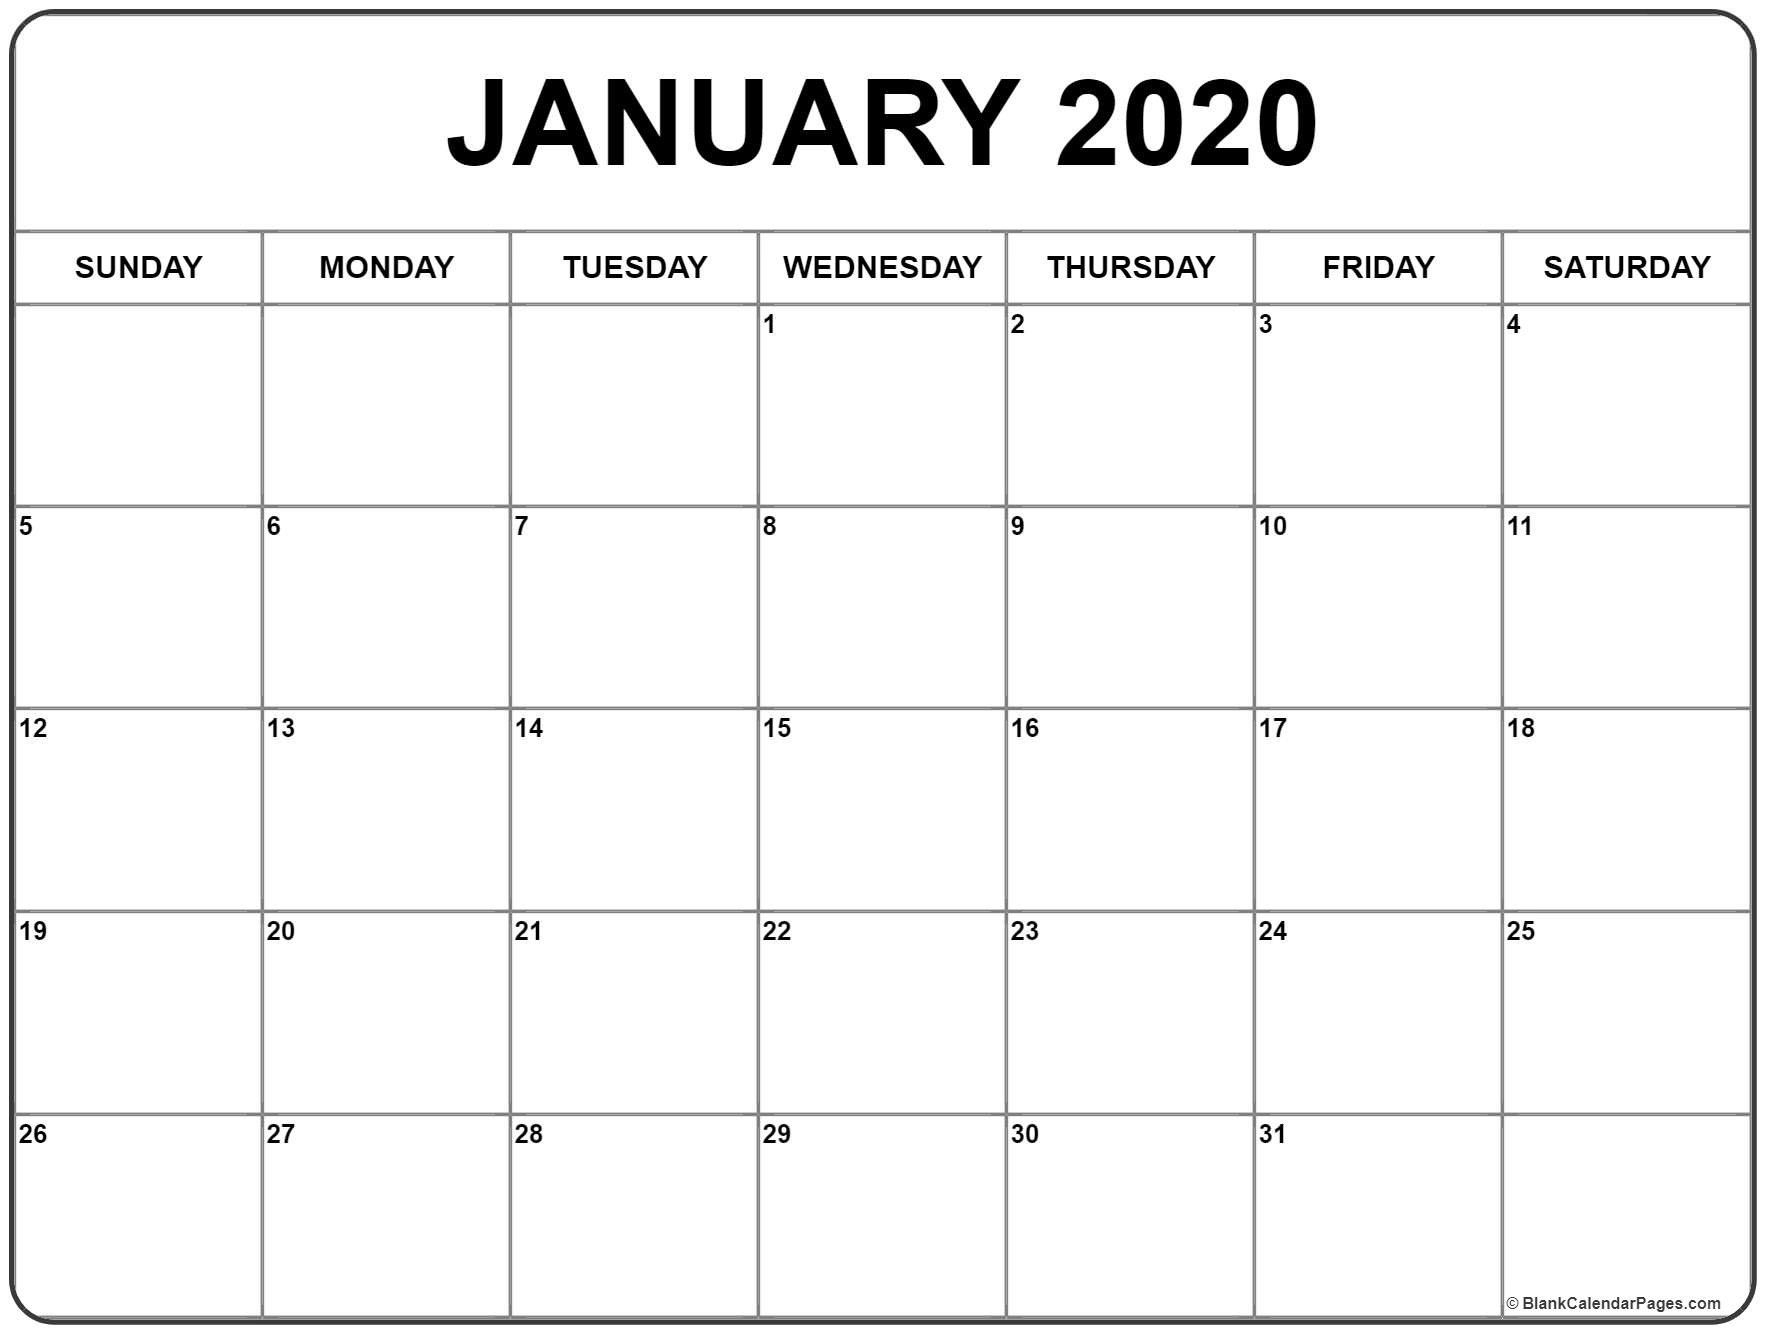 January 2020 Calendar 56 Templates Of 2020 Printable January intended for Online Free Printable Calendar 2020